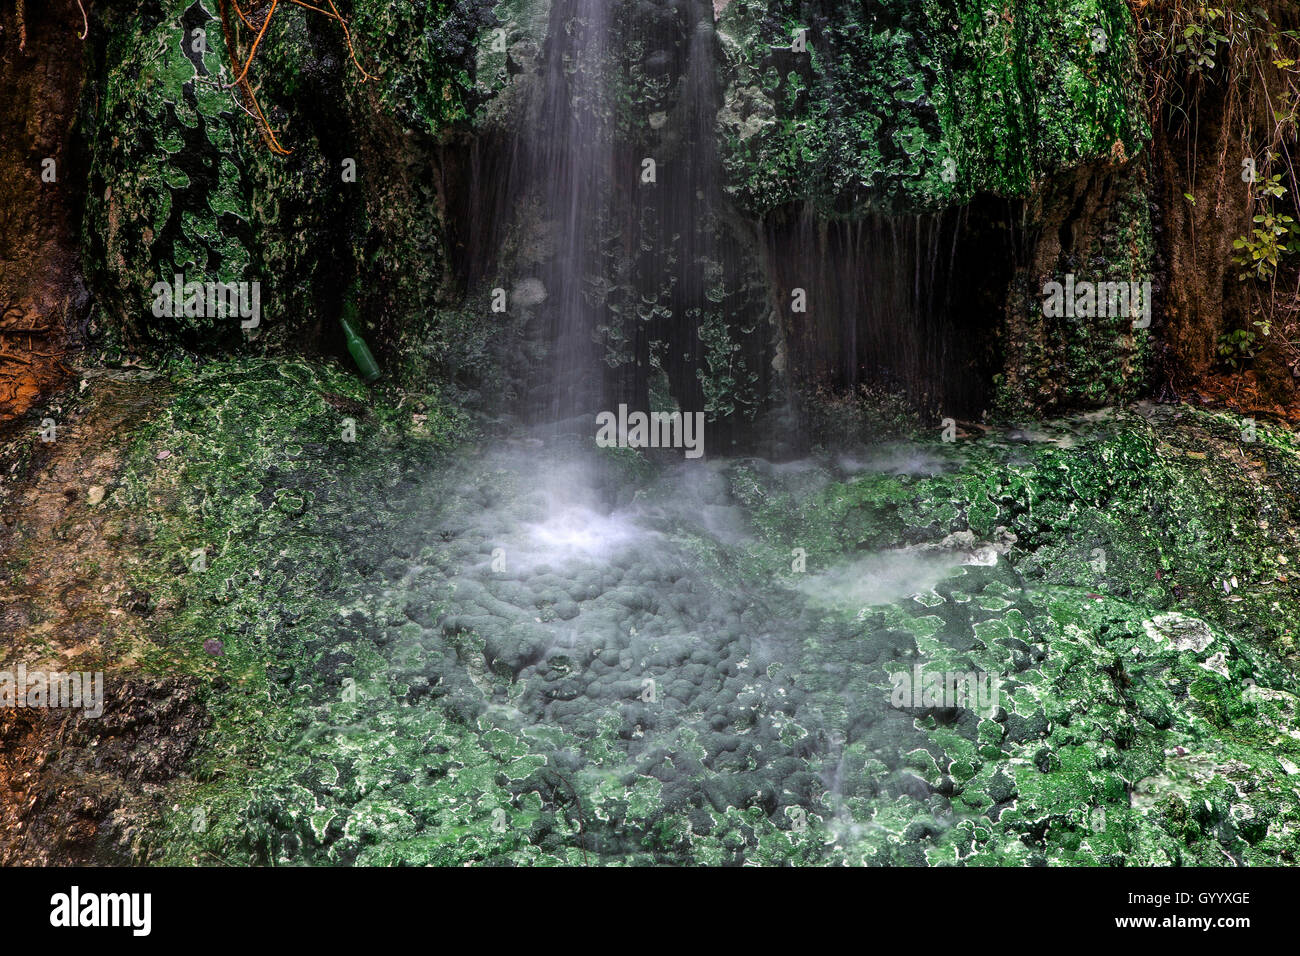 Small waterfall with green mineral deposits, hot springs of Bagni San Filippo, Castiglione d'Orcia, Tuscany, Italy Stock Photo